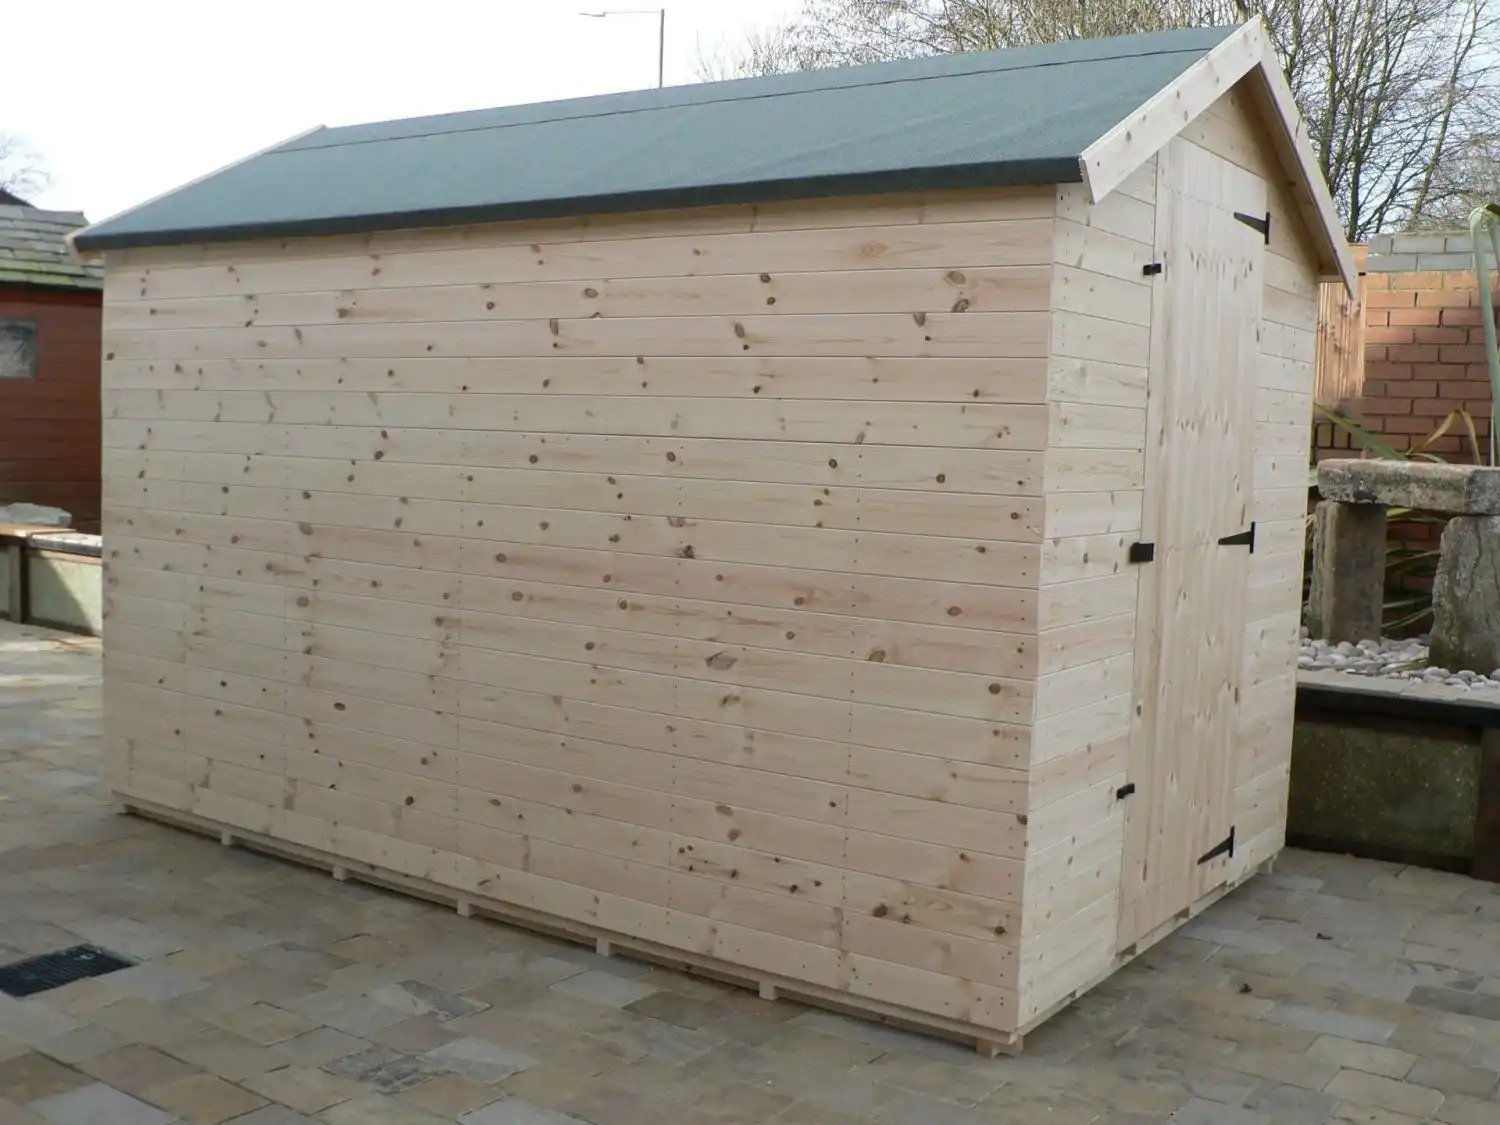 10' X 6' Apex Shed No Windows